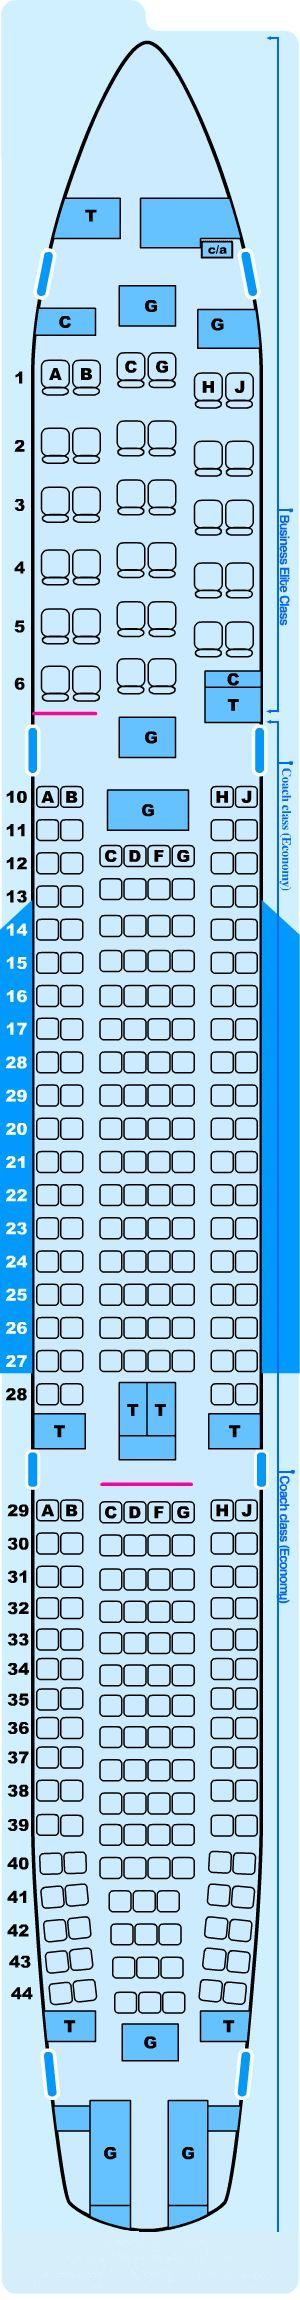 Seat map for Northwest Airlines Airbus A330 300